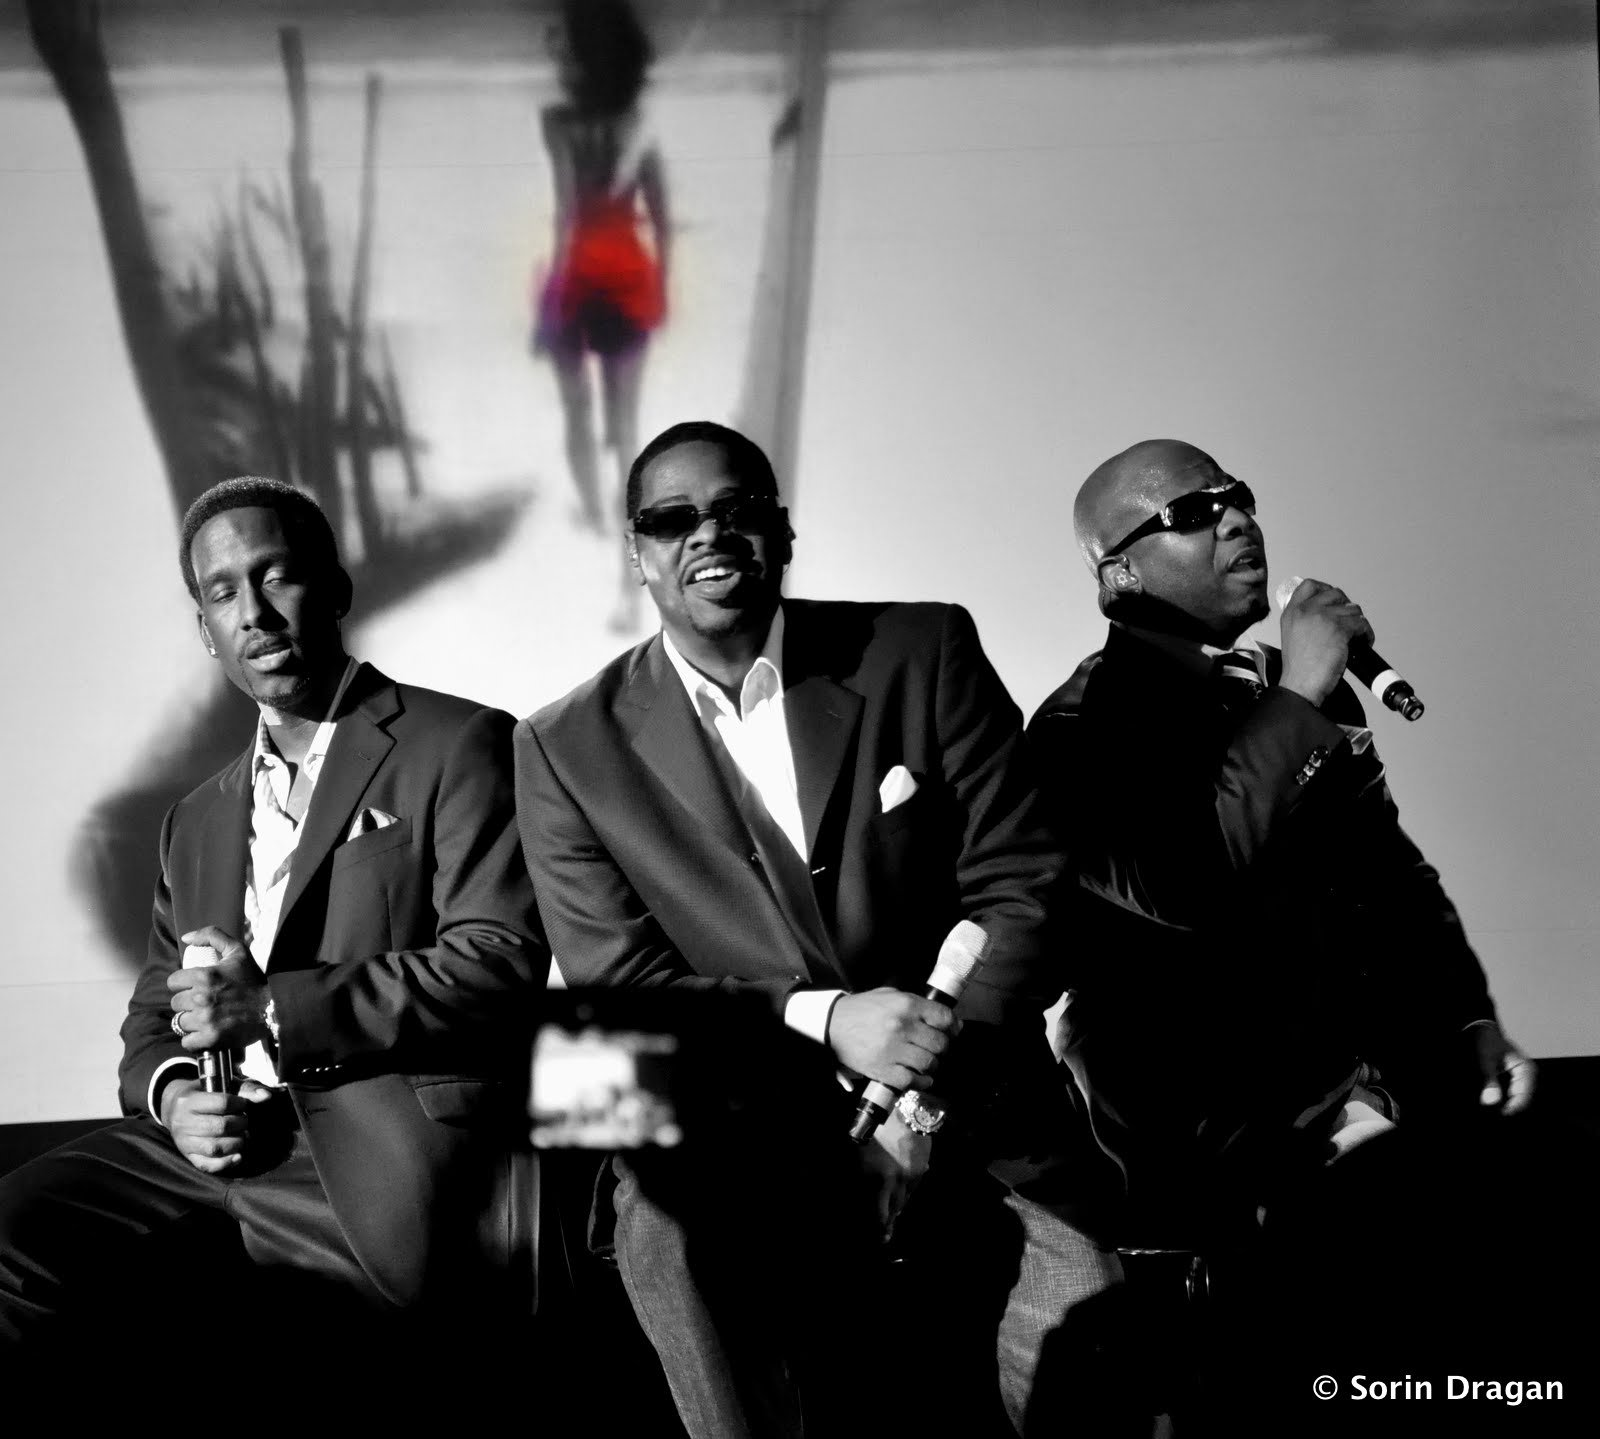 boyz ii men Get more on the members of popular r&b group boyz ii men, including shawn stockman, wanya morris, nathan morris and michael mccary see full biographies, photos, videos and more, only at biographycom.